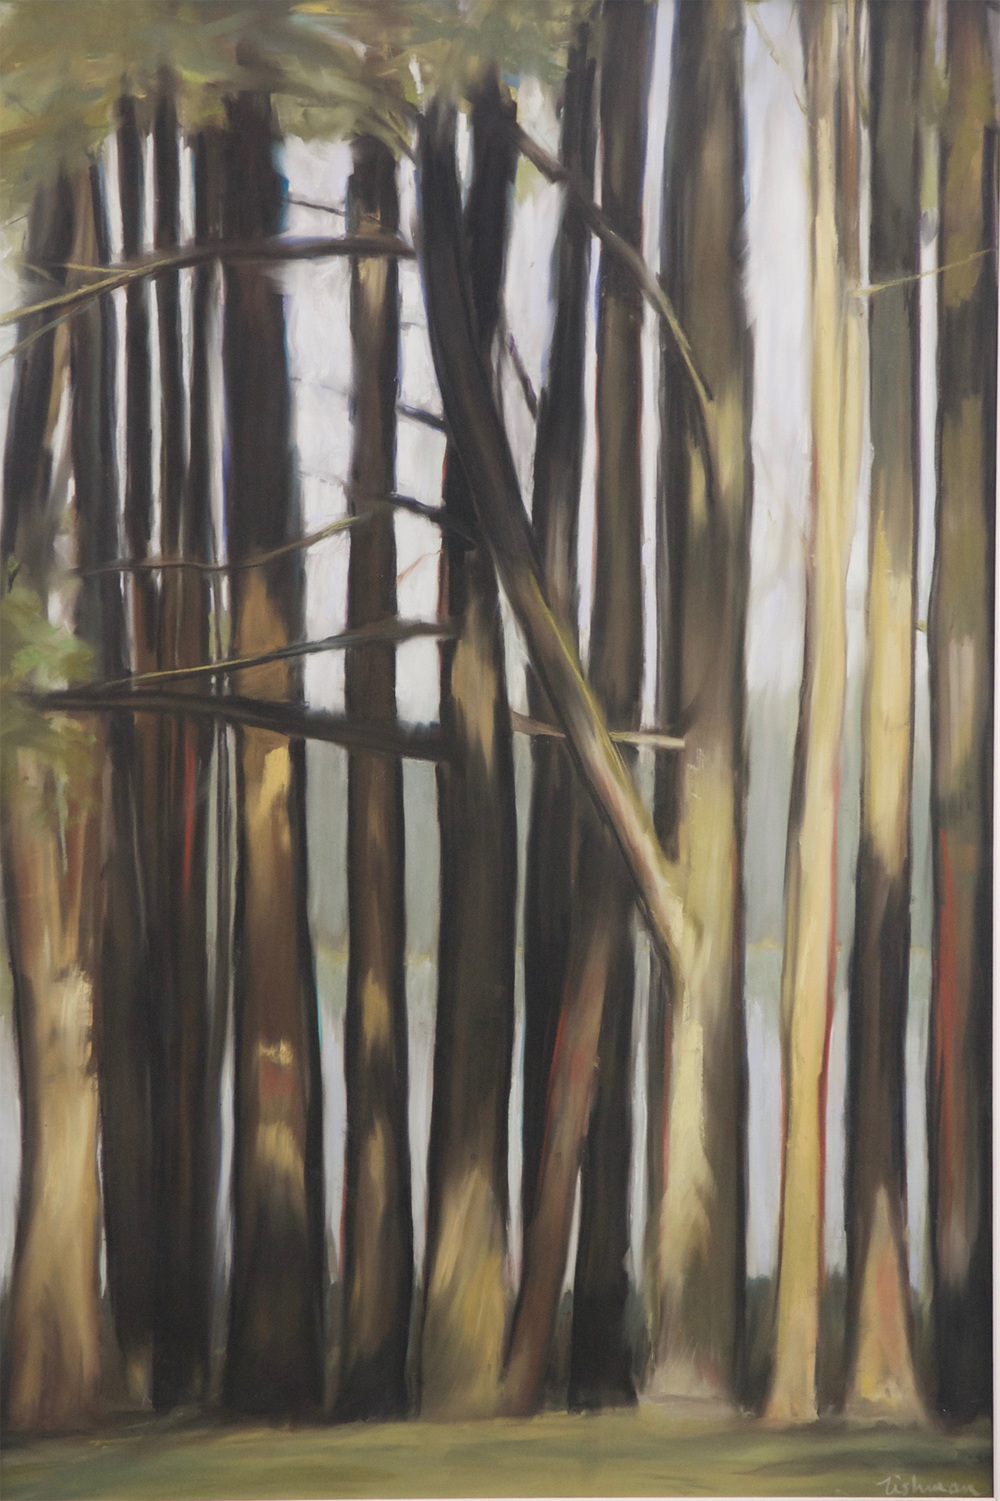 <p><strong>ANDREA TISHMAN</strong>pastel<a href=/andrea-tishman>More →</a></p>